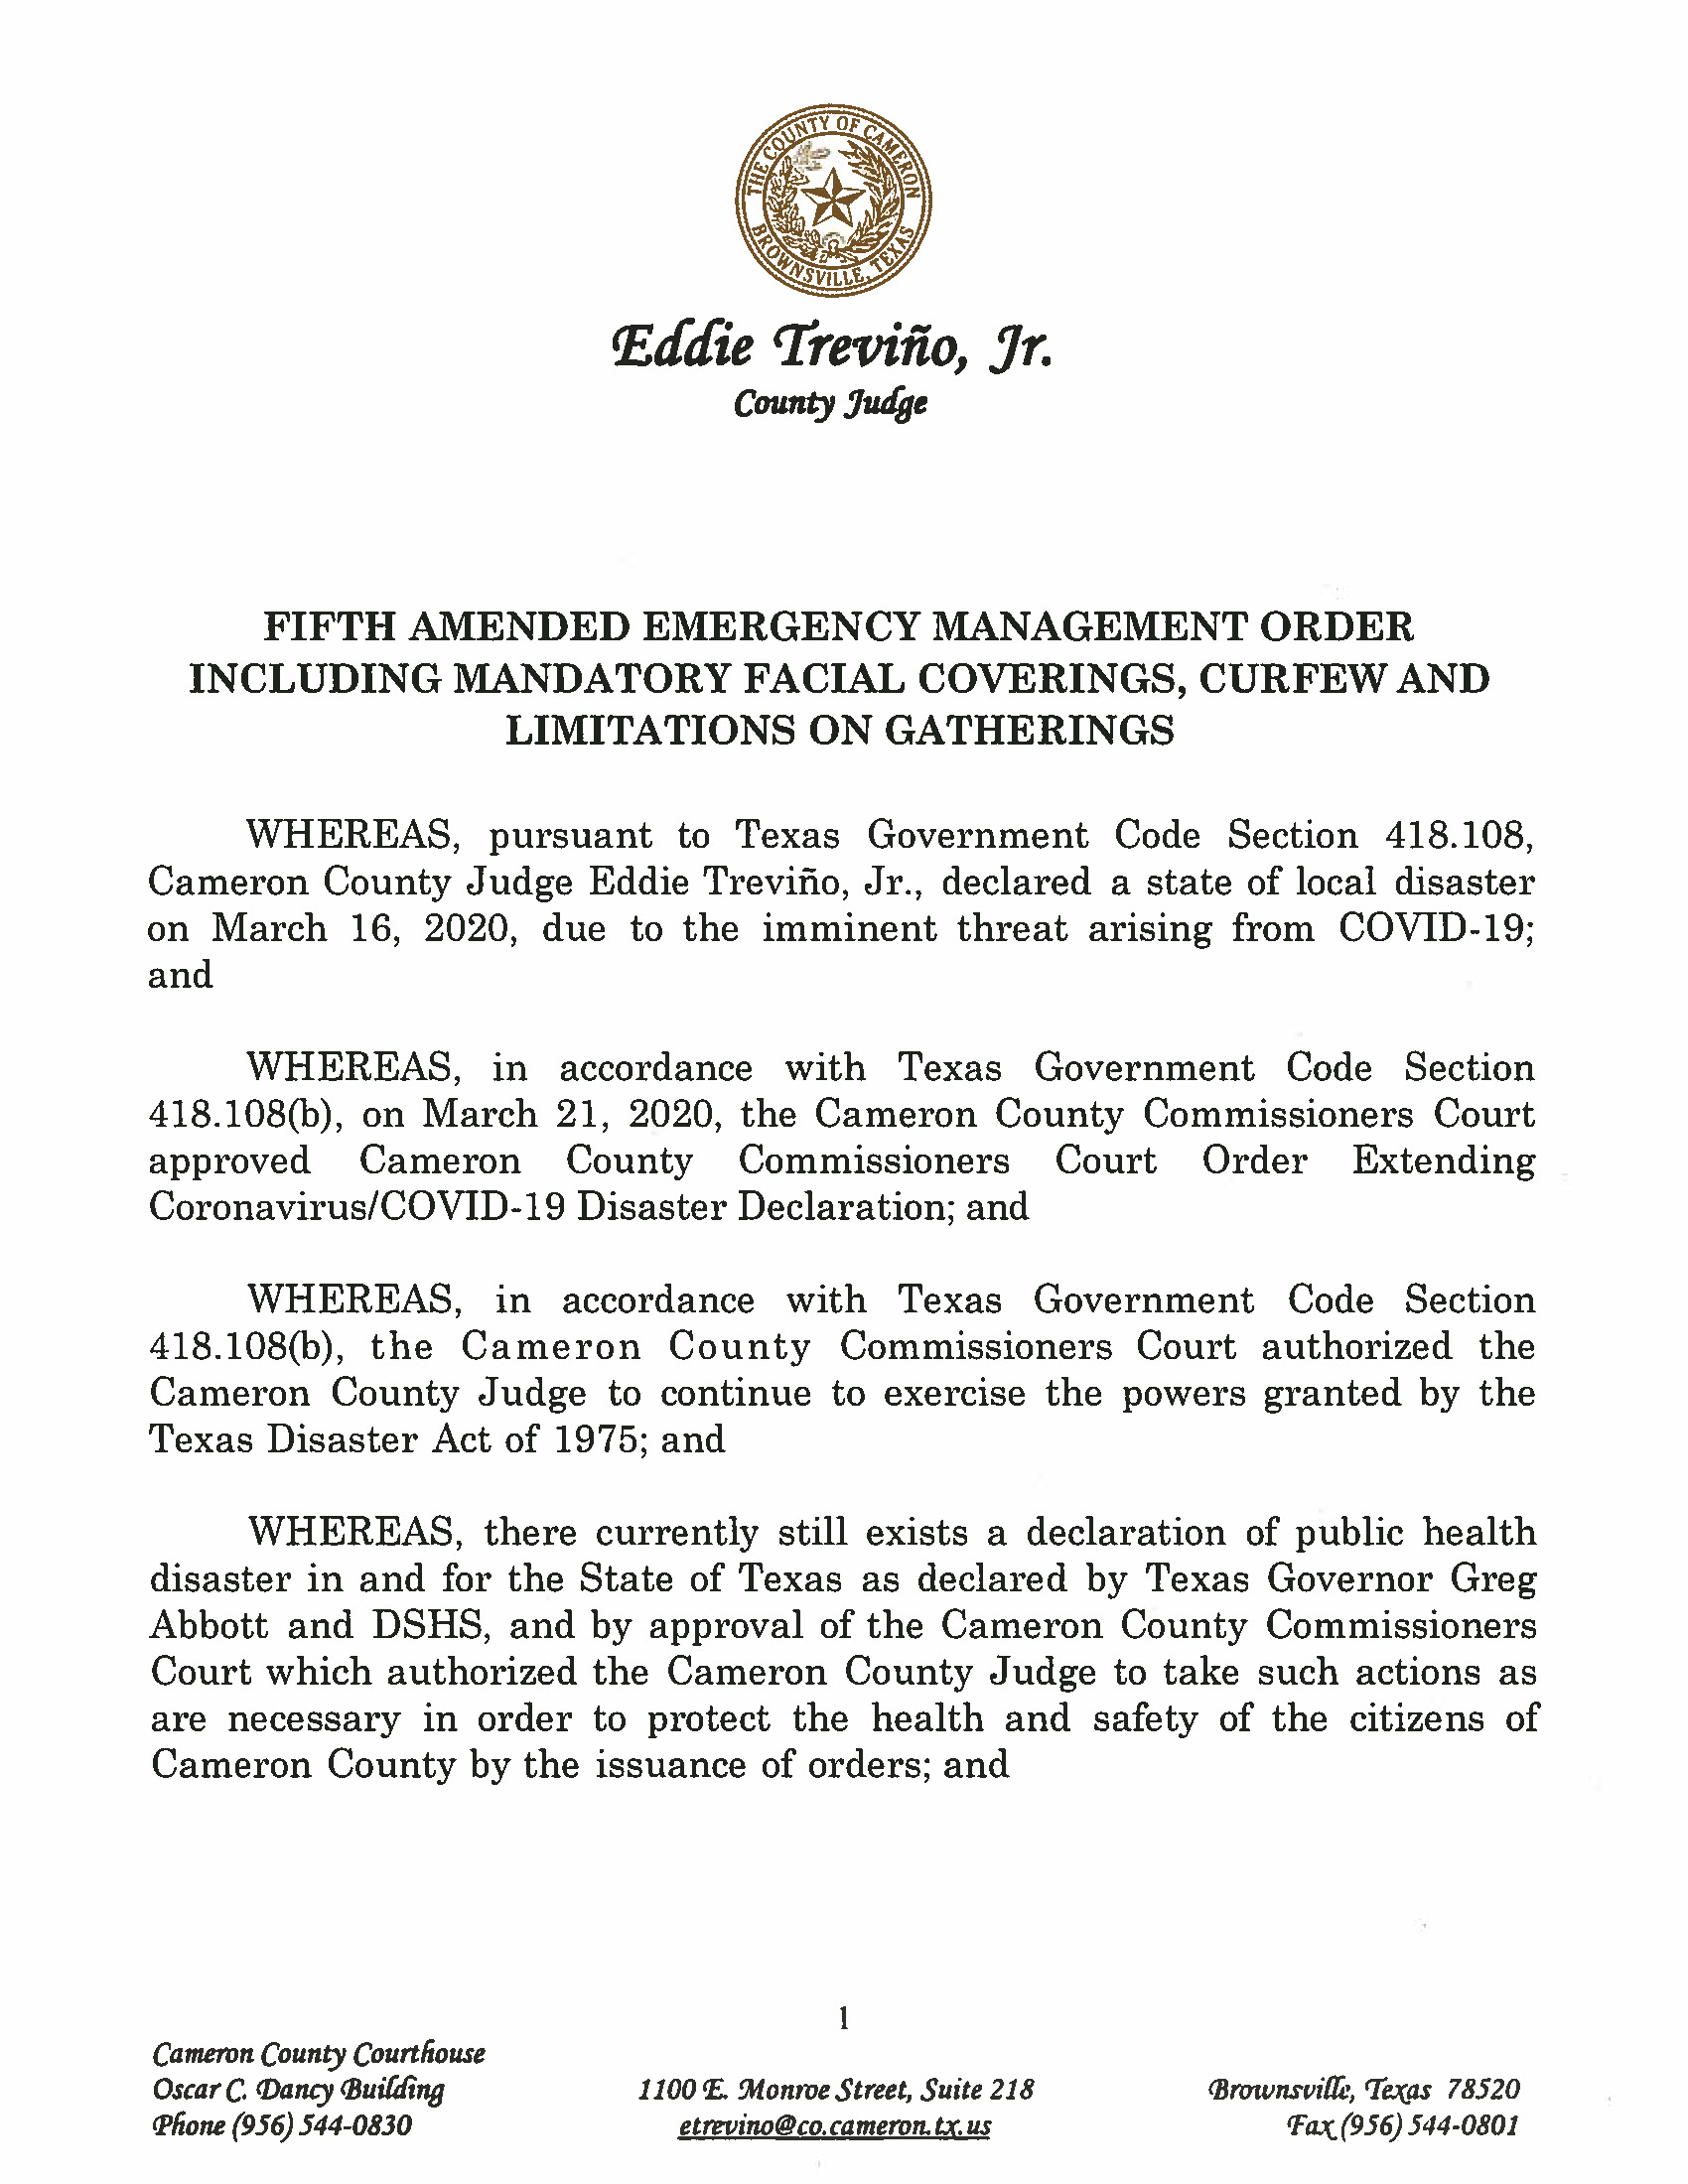 09.18.2020 Fifth Amended Emergency Management Order Including Mandatory Facial Coverings Curfew And Limitations On Gatherings Page 1